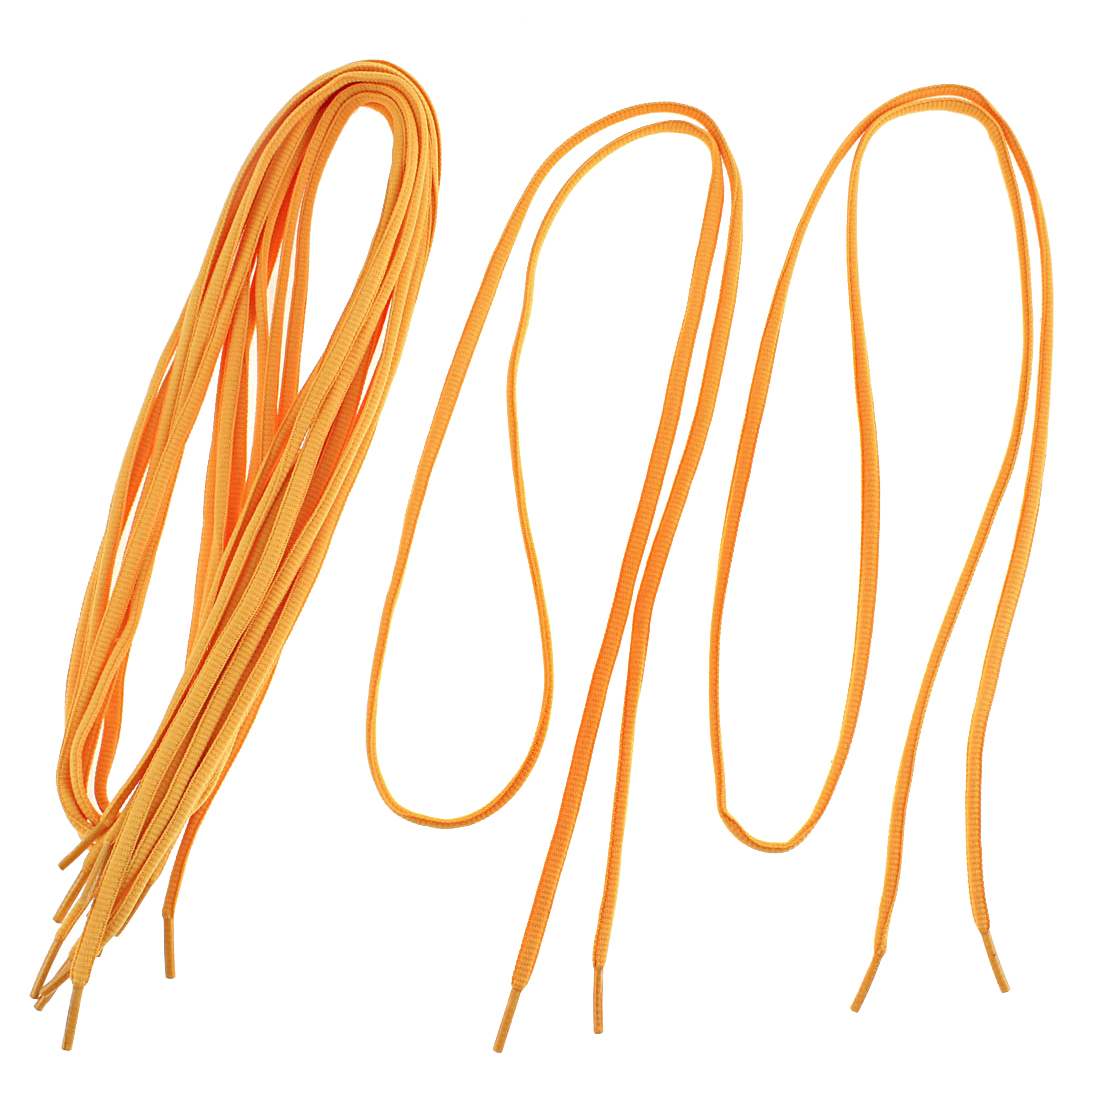 "Athletic Sports Sneaker Shoe Laces String Orange 43"" Length 4 Pairs"